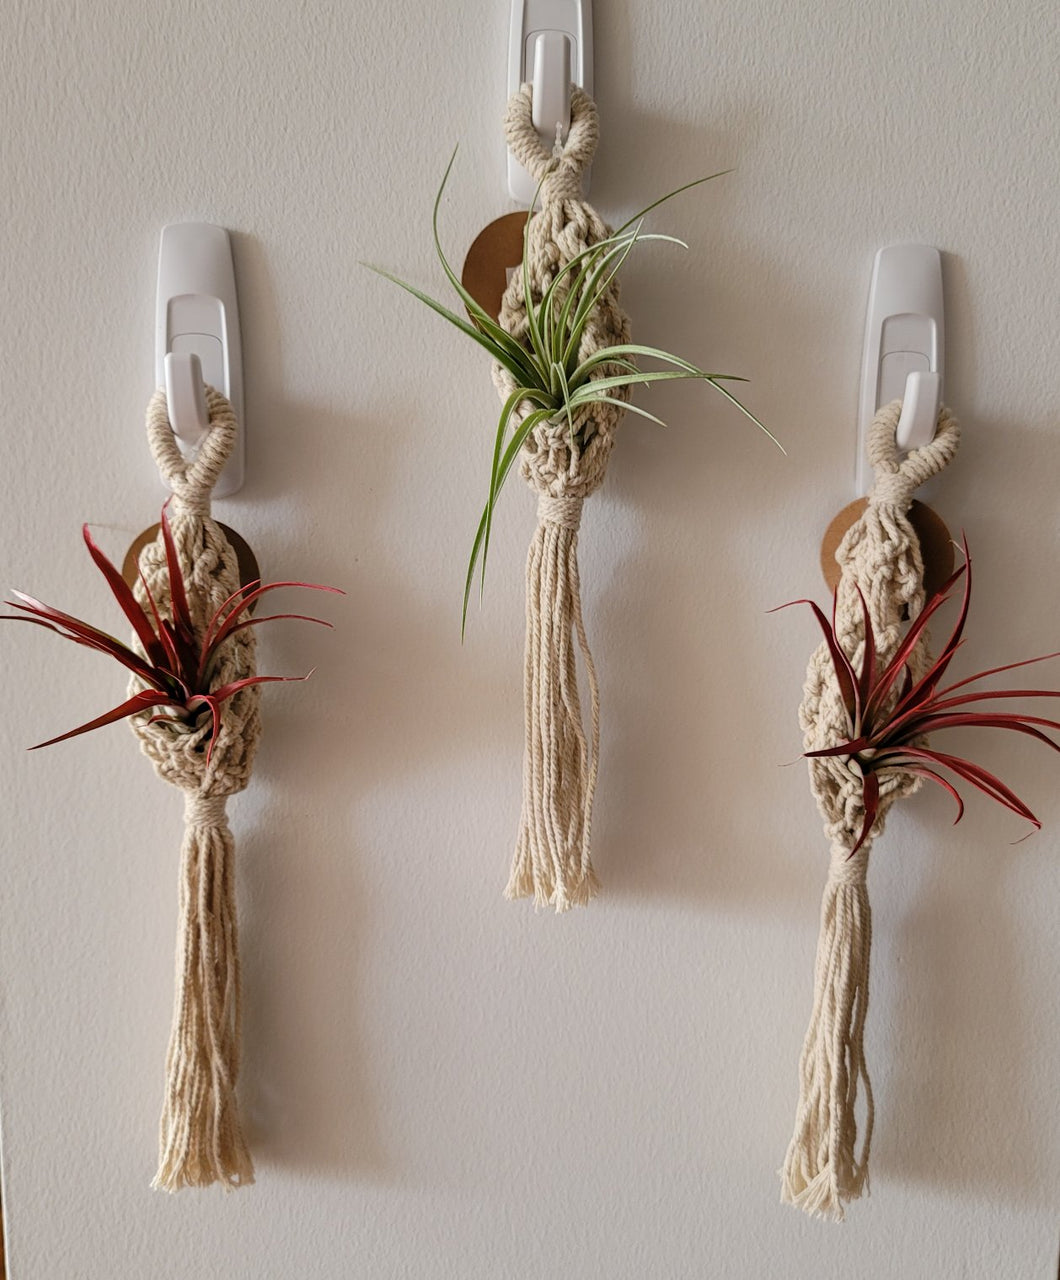 Macrame Air Plant Hanger and Plant